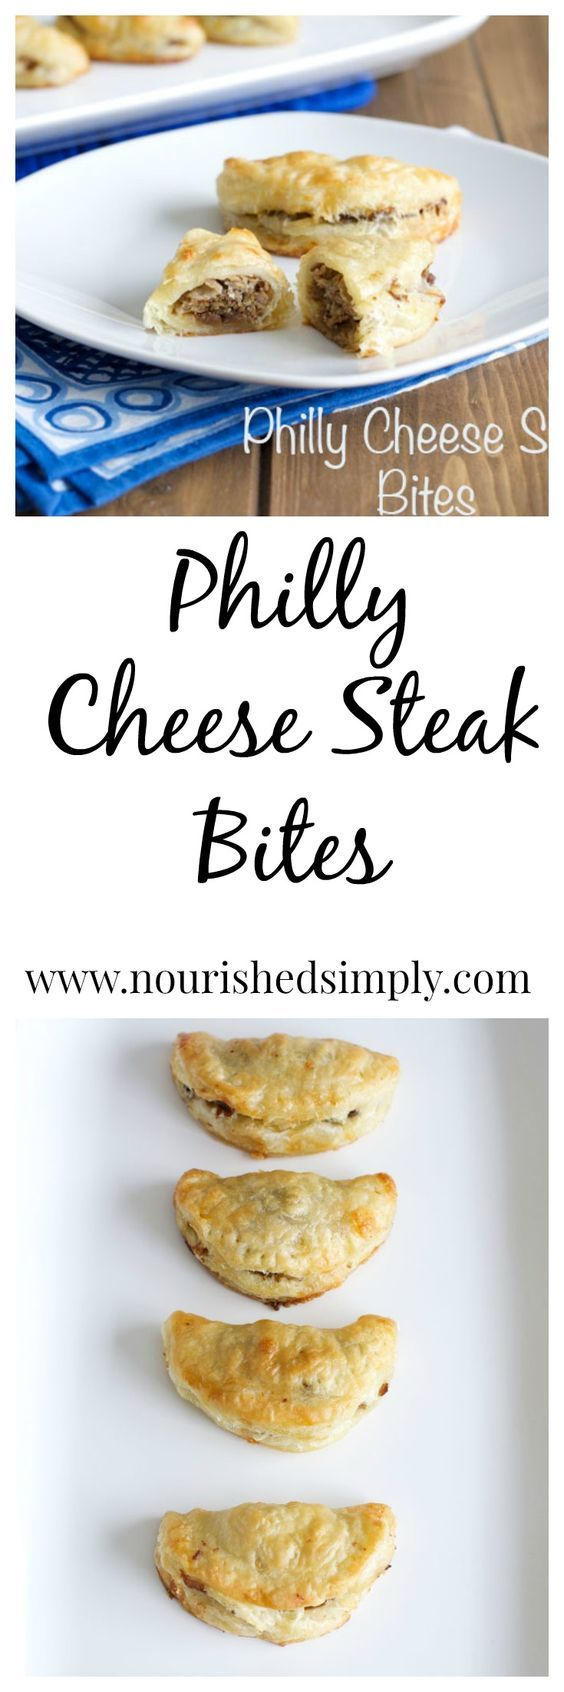 Philly Cheese Steak Bites - enjoy the deliciousness of the classic Philadelphia Cheese Steak in a lower calorie bite size treat.